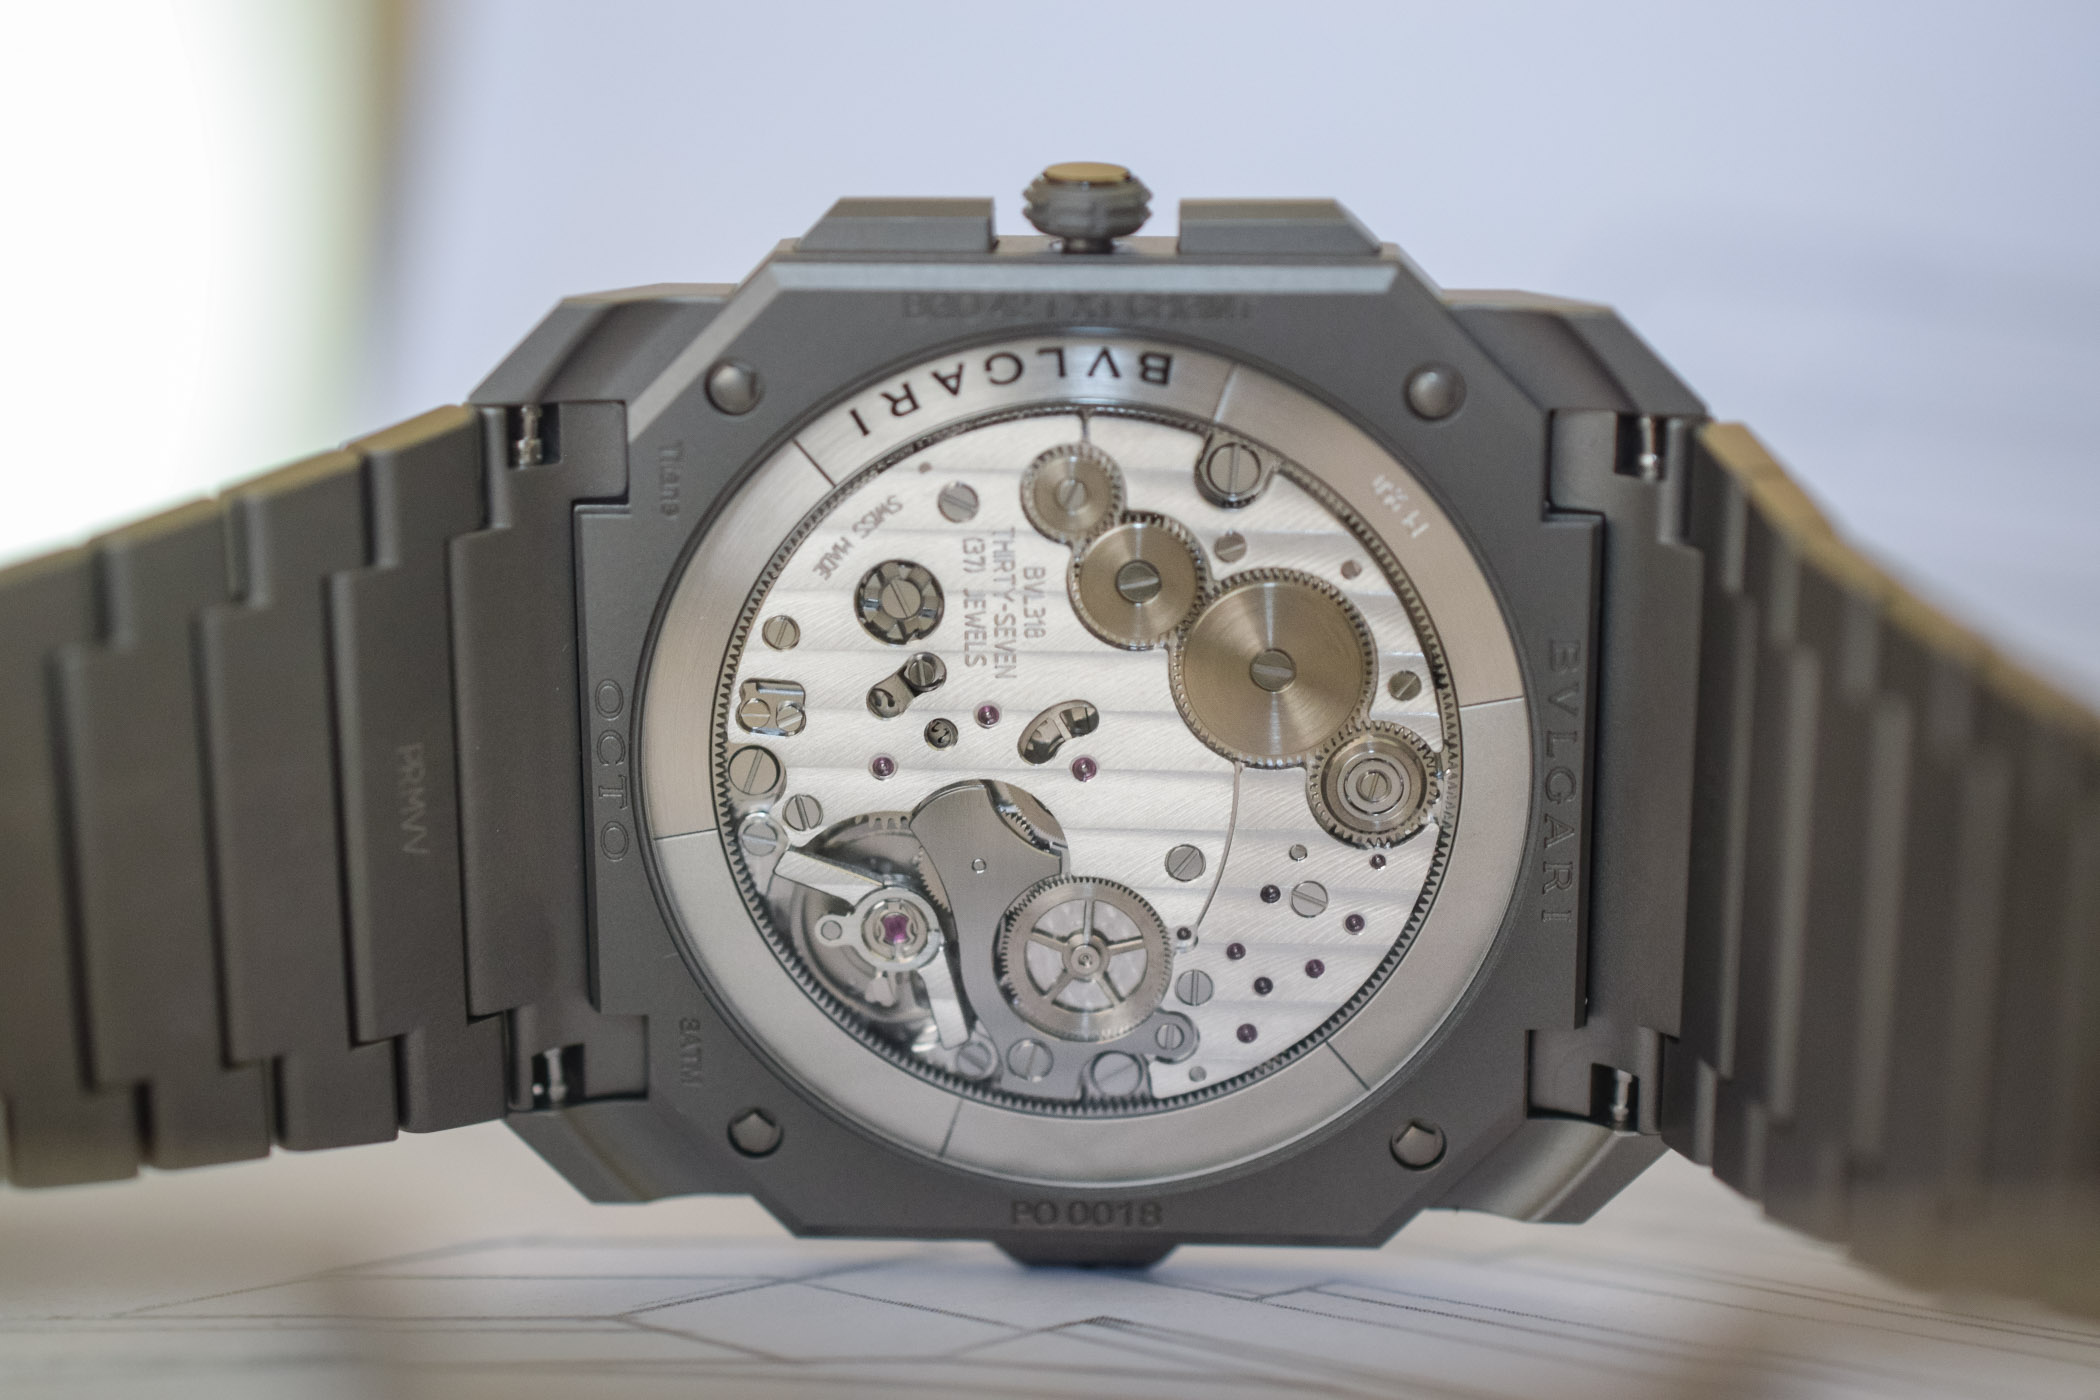 Bulgari Octo Finissimo Chronograph GMT Automatic - Worlds thinnest chronograph - Baselworld 2019